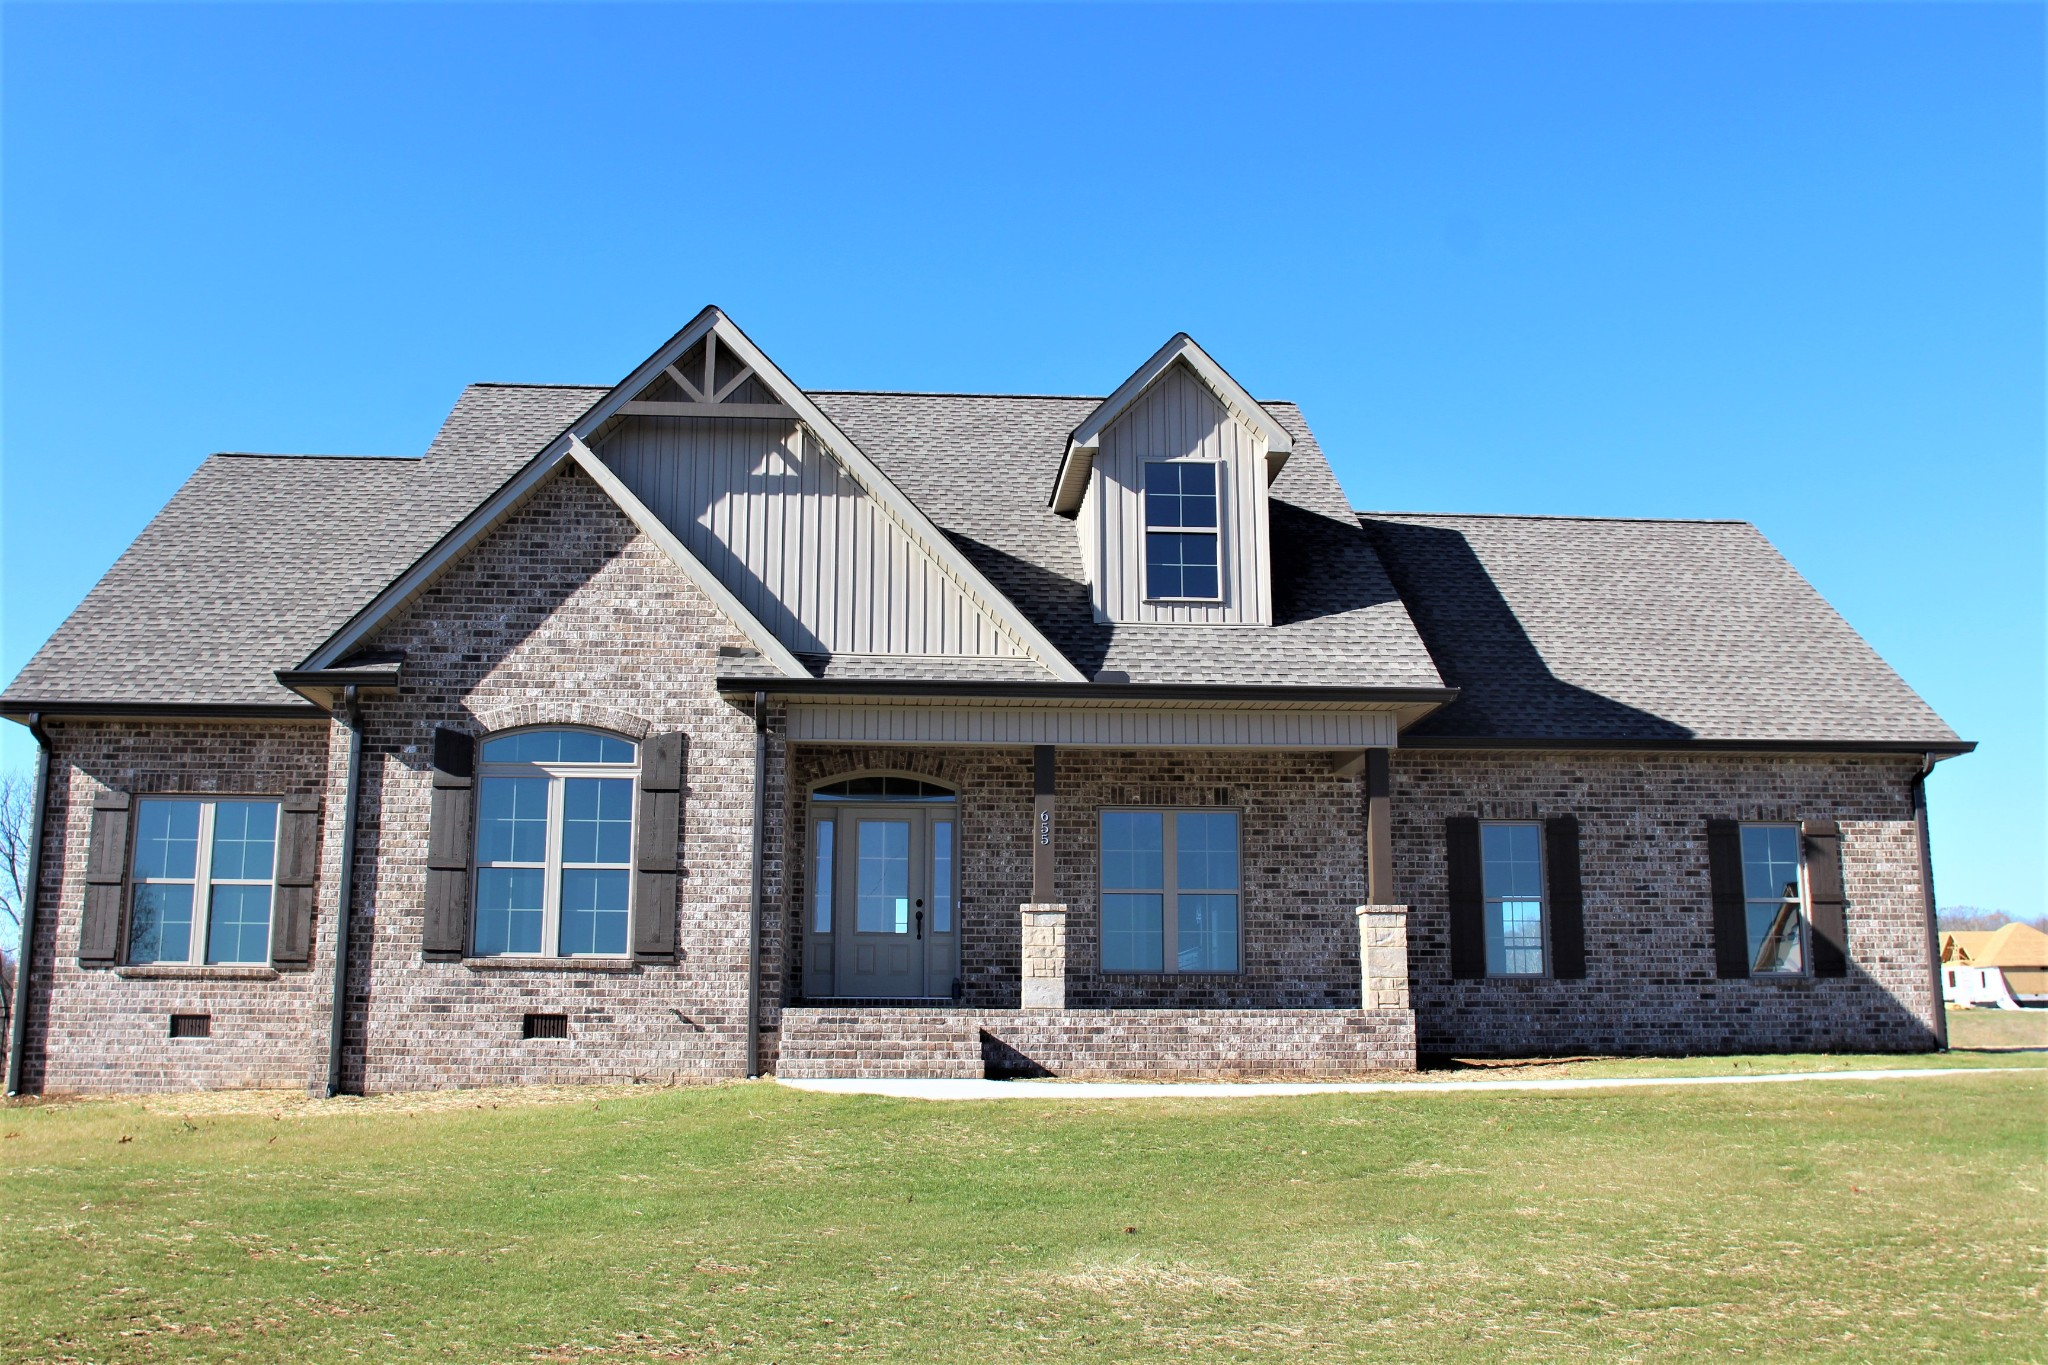 655 Blue Water Dr, Cookeville, TN 38506 - Cookeville, TN real estate listing